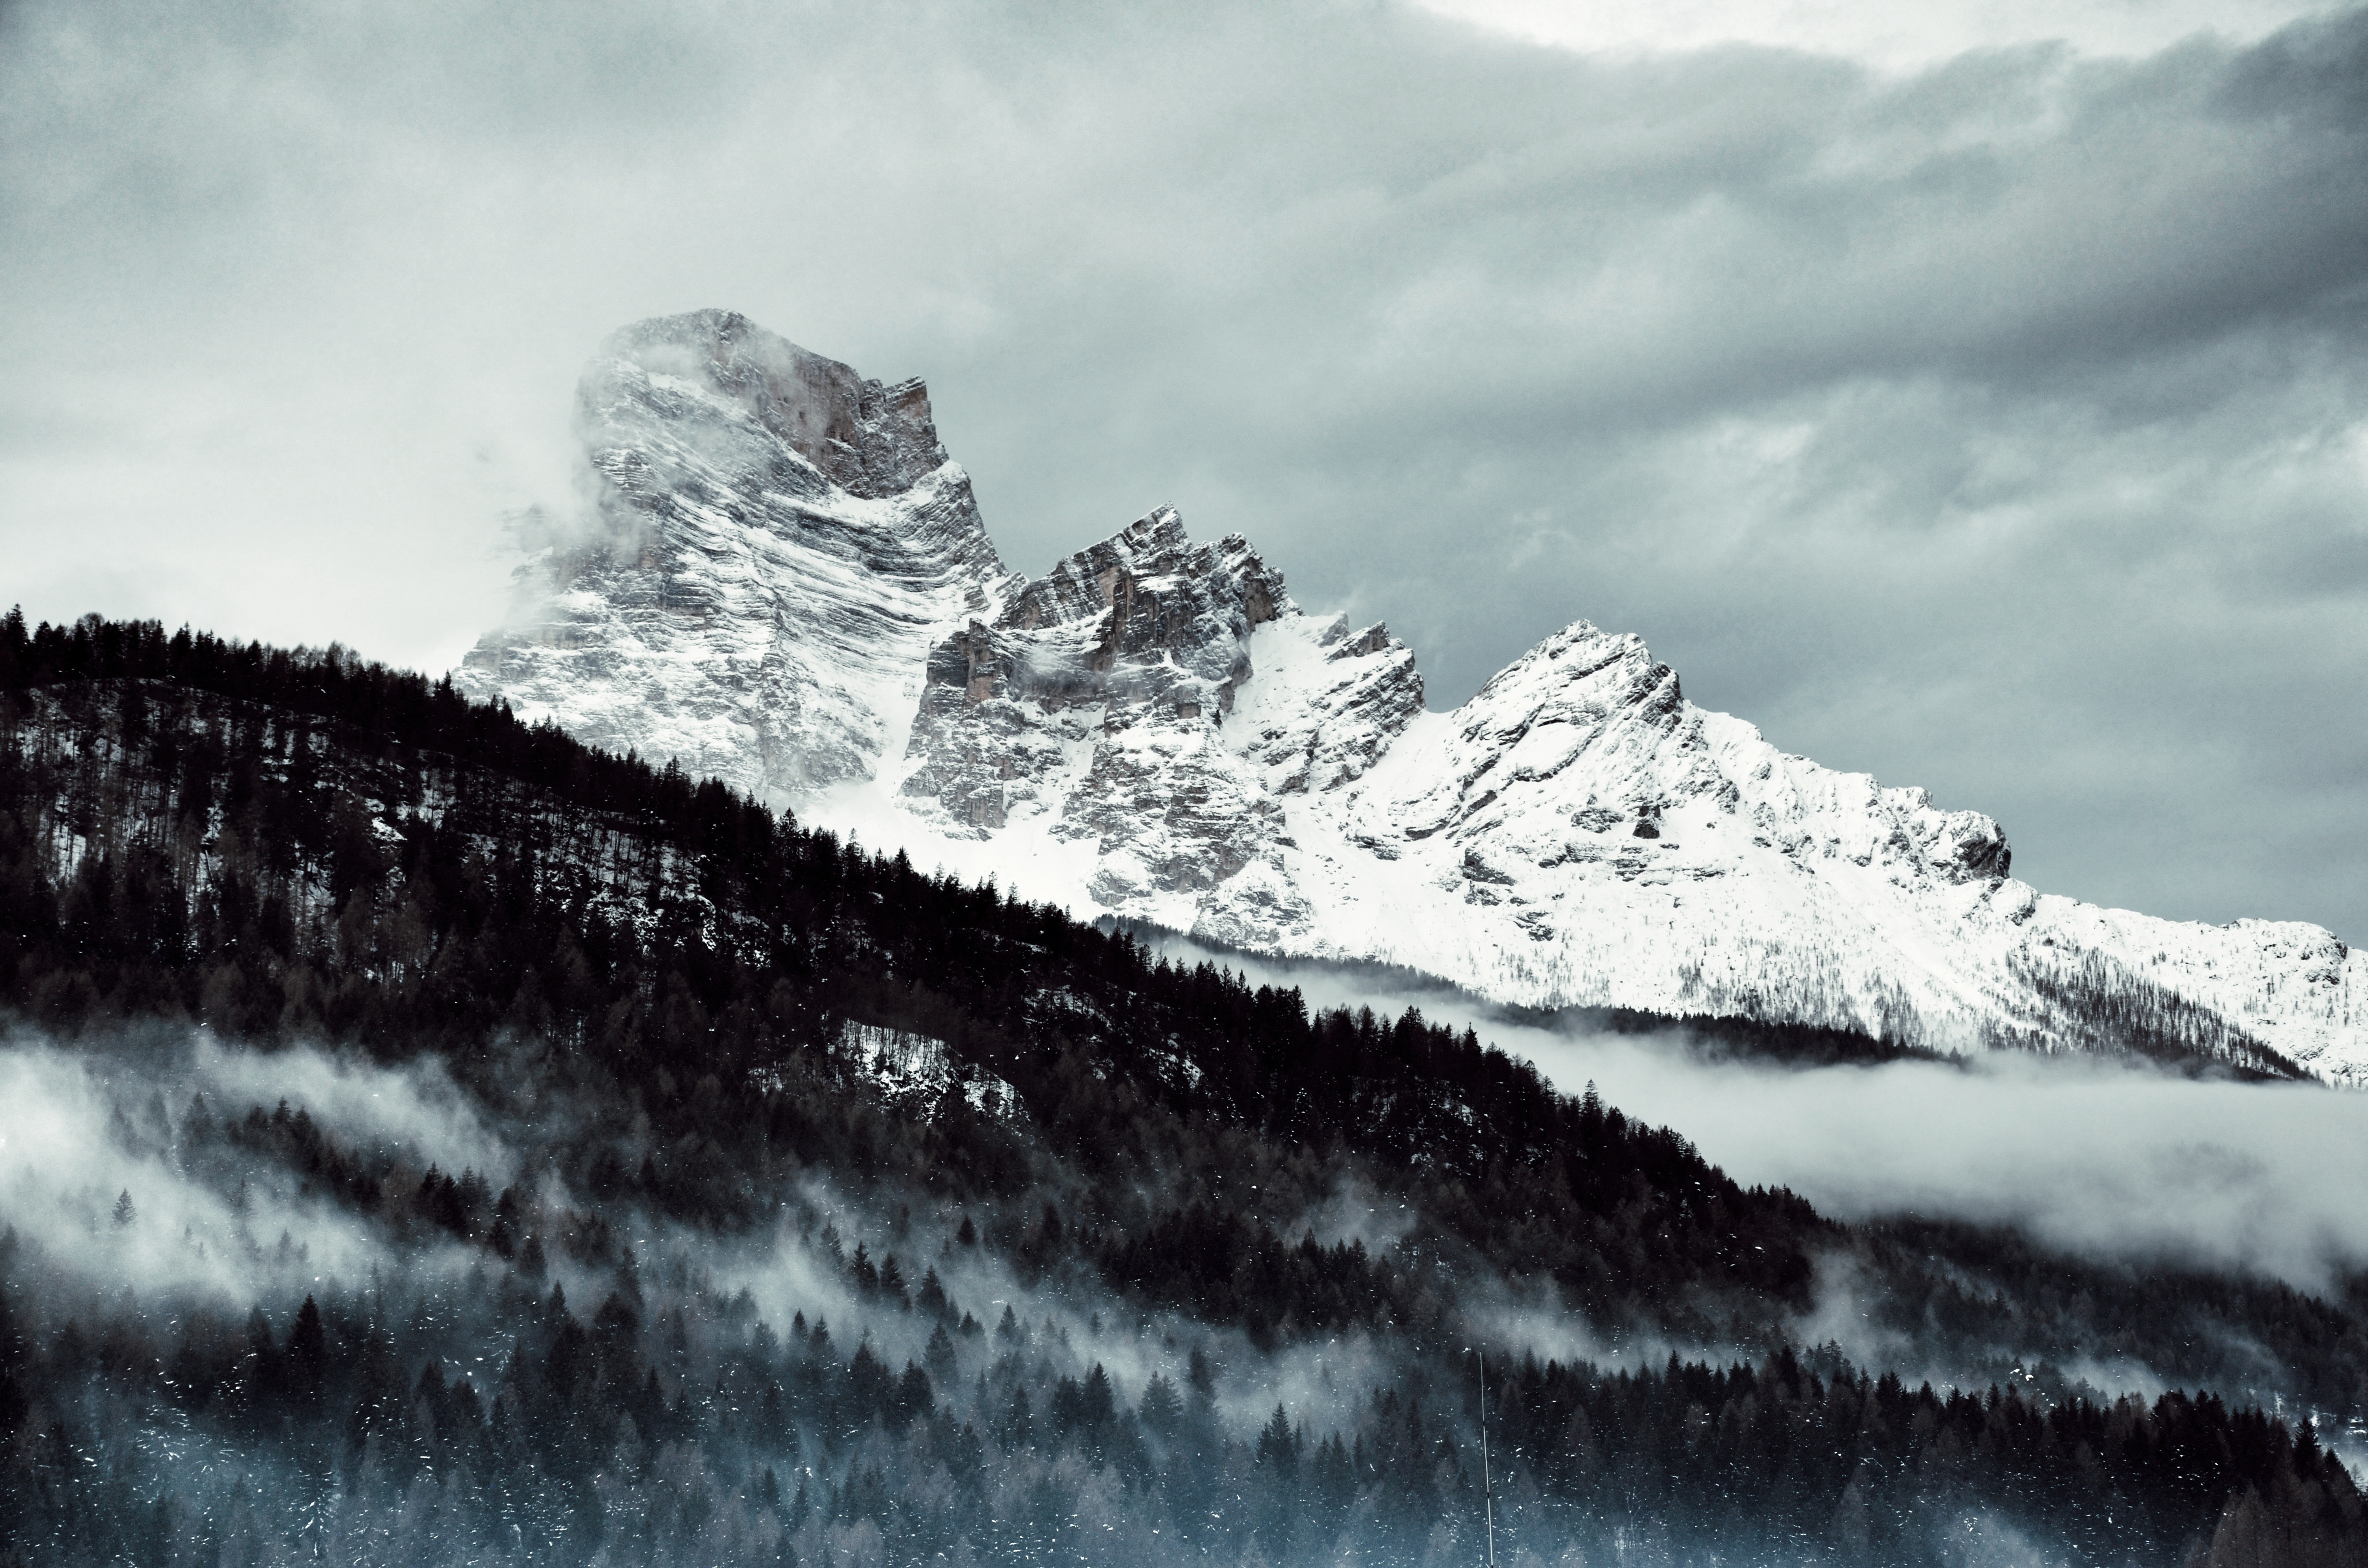 Snow Covered Mountain Under Cloudy Sky, Altitude, Nature, Winter, Wide angle photography, HQ Photo